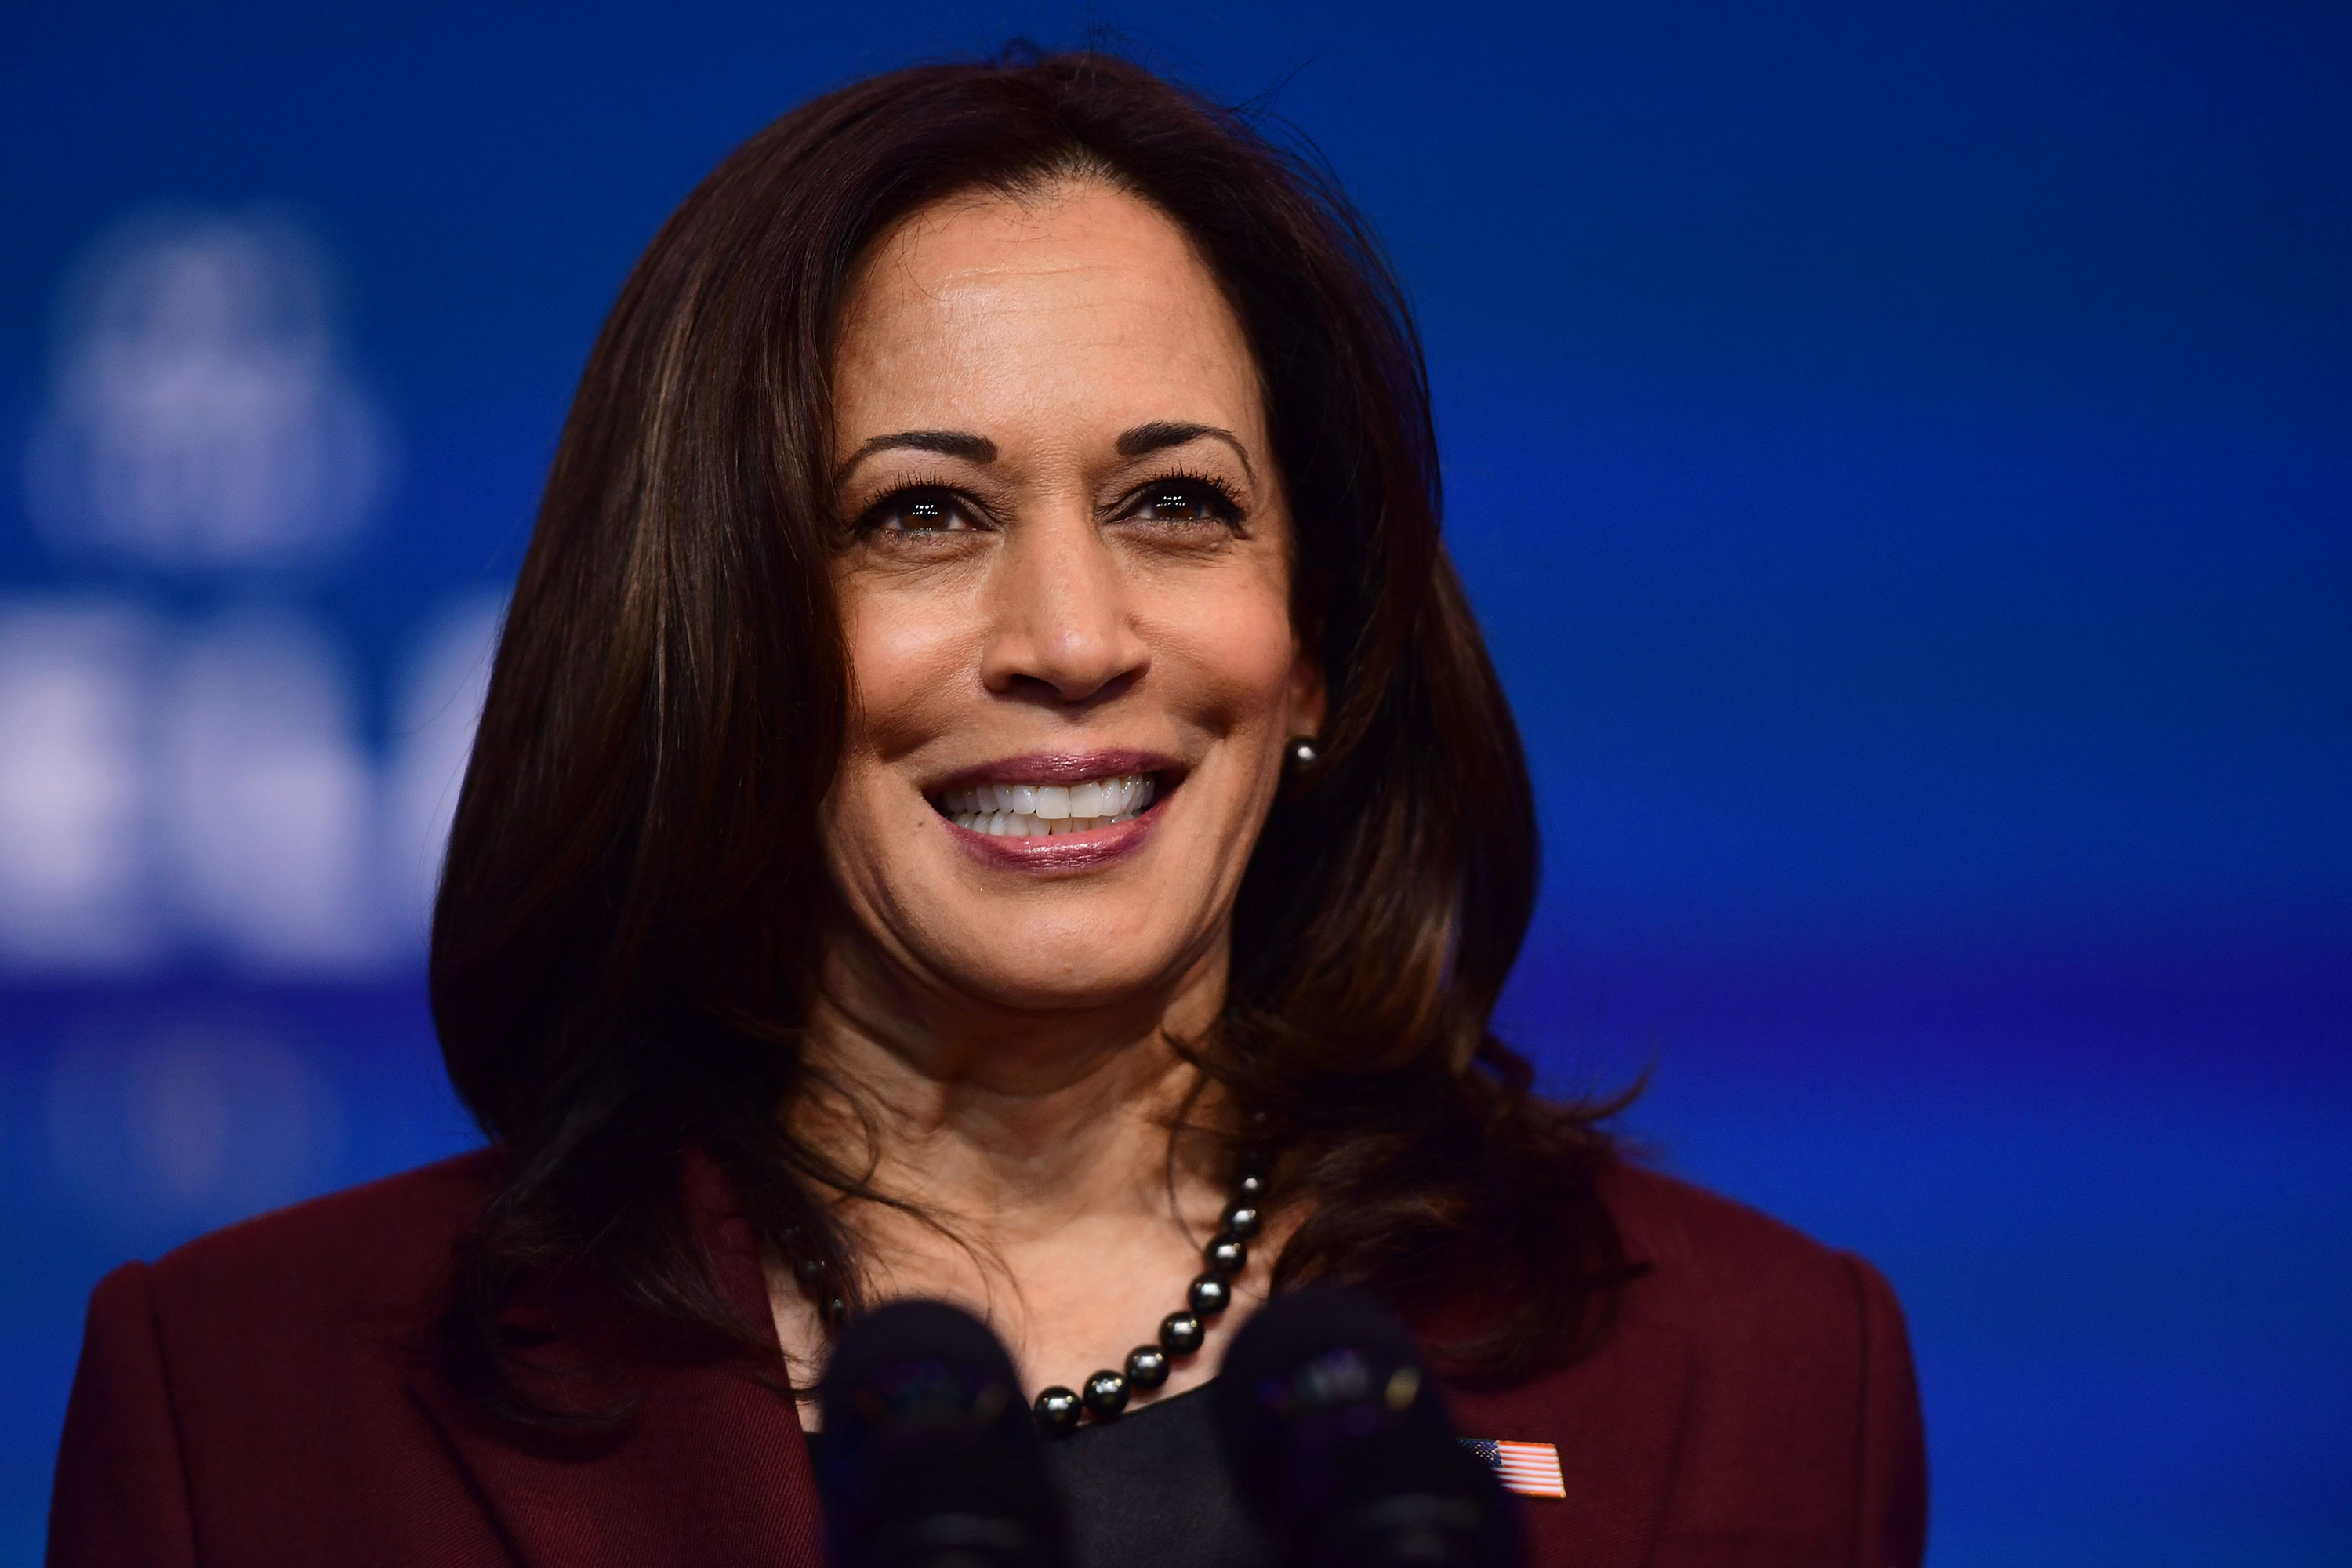 Vice President-elect Kamala Harris speaks at the Queen Theatre on November 24 in Wilmington, Delaware.